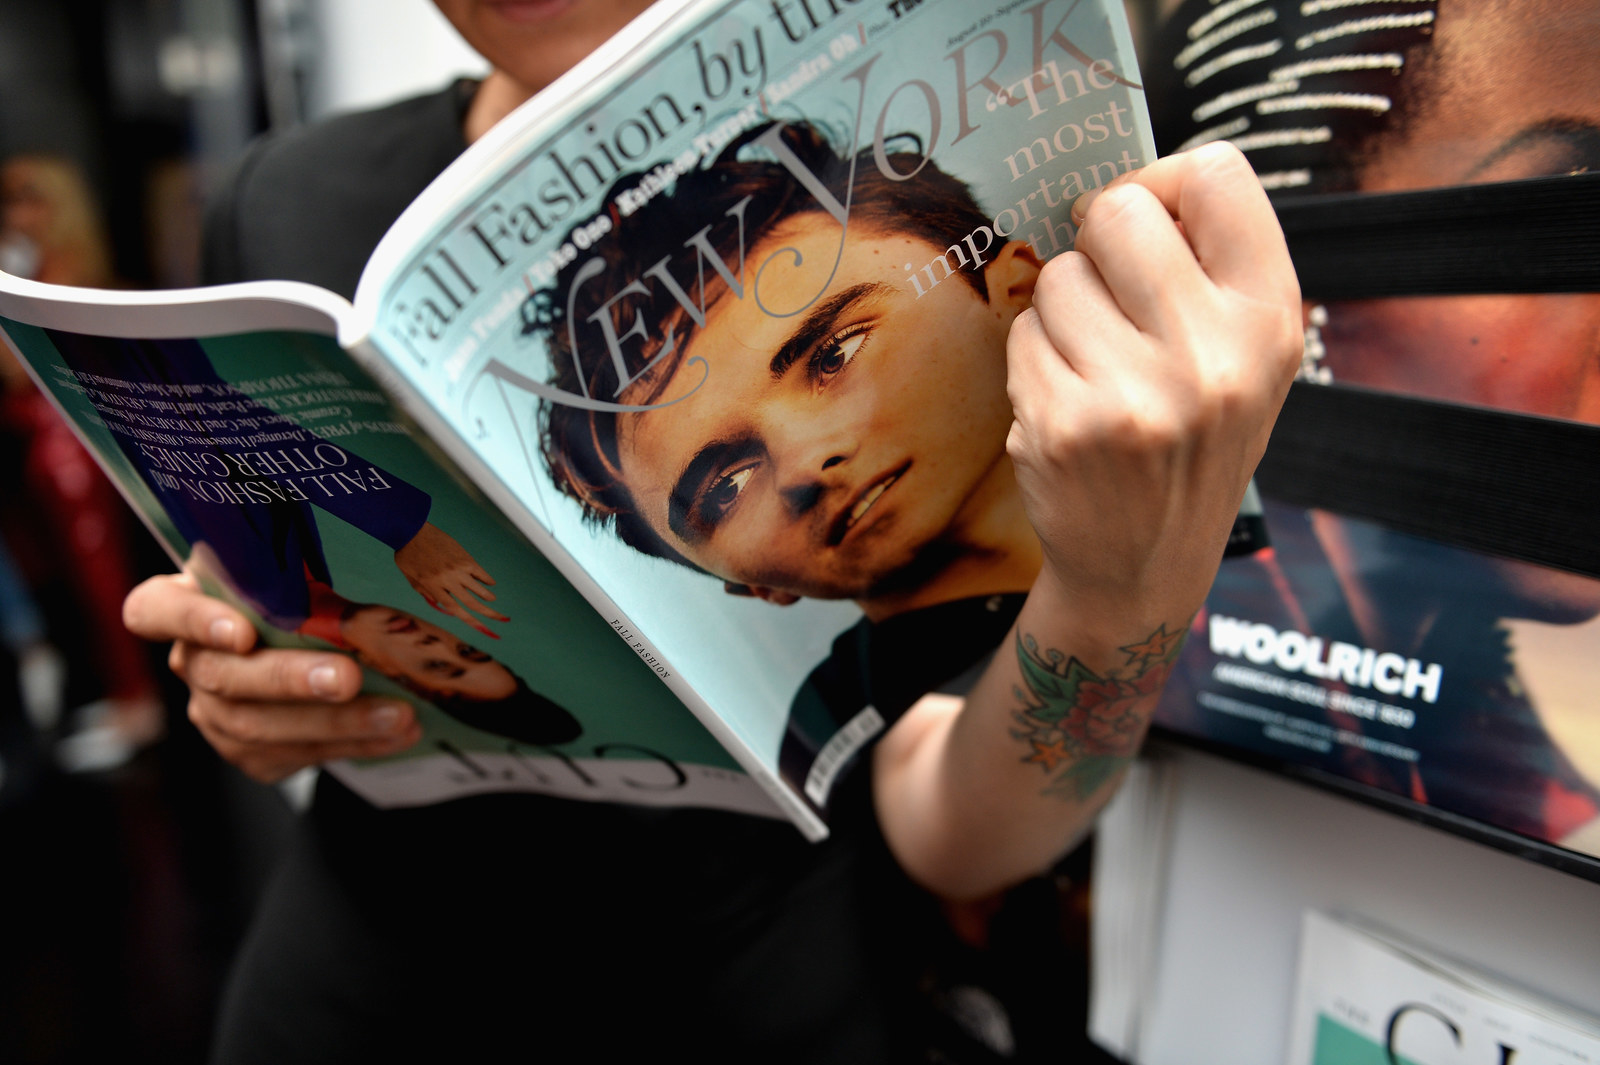 New York Magazine's Staff Is Unionizing